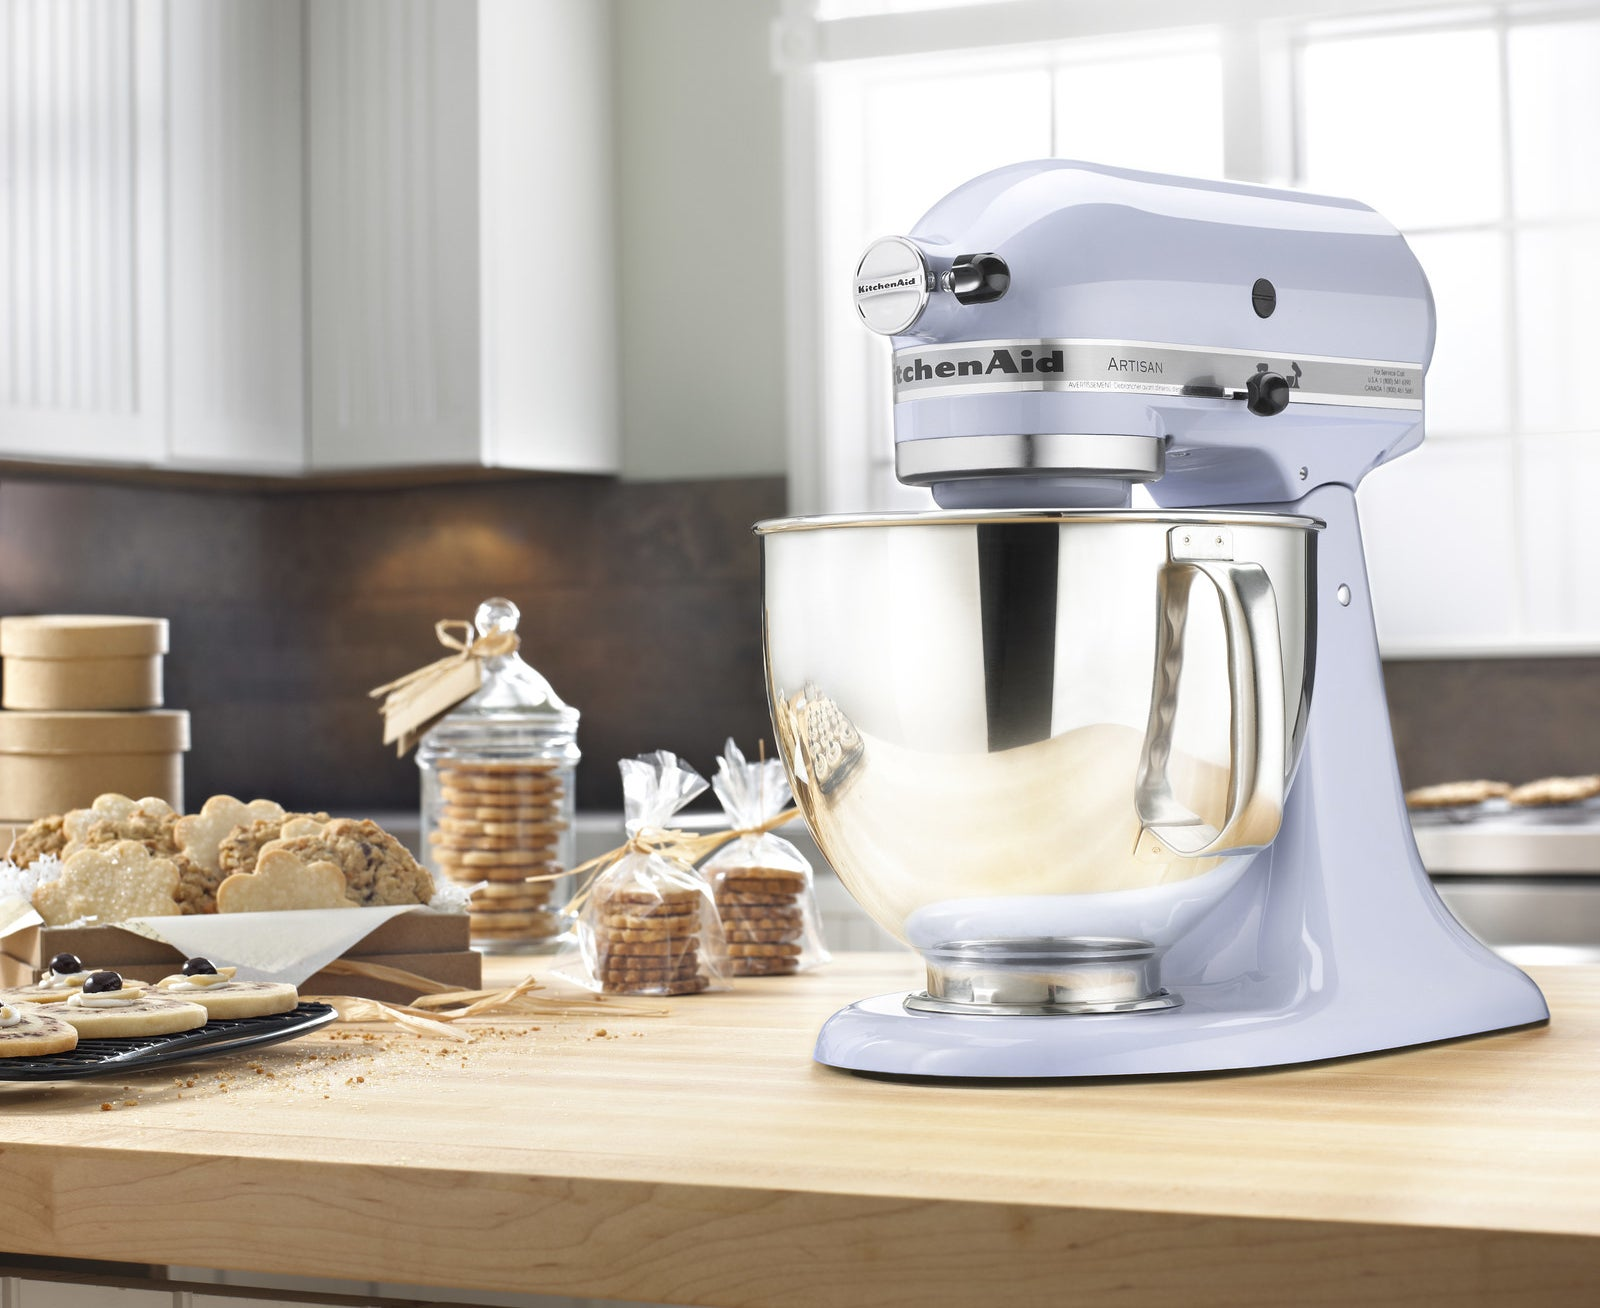 Walmart Wedding Registry: 20 Kitchen Products That Literally Everyone Will Want